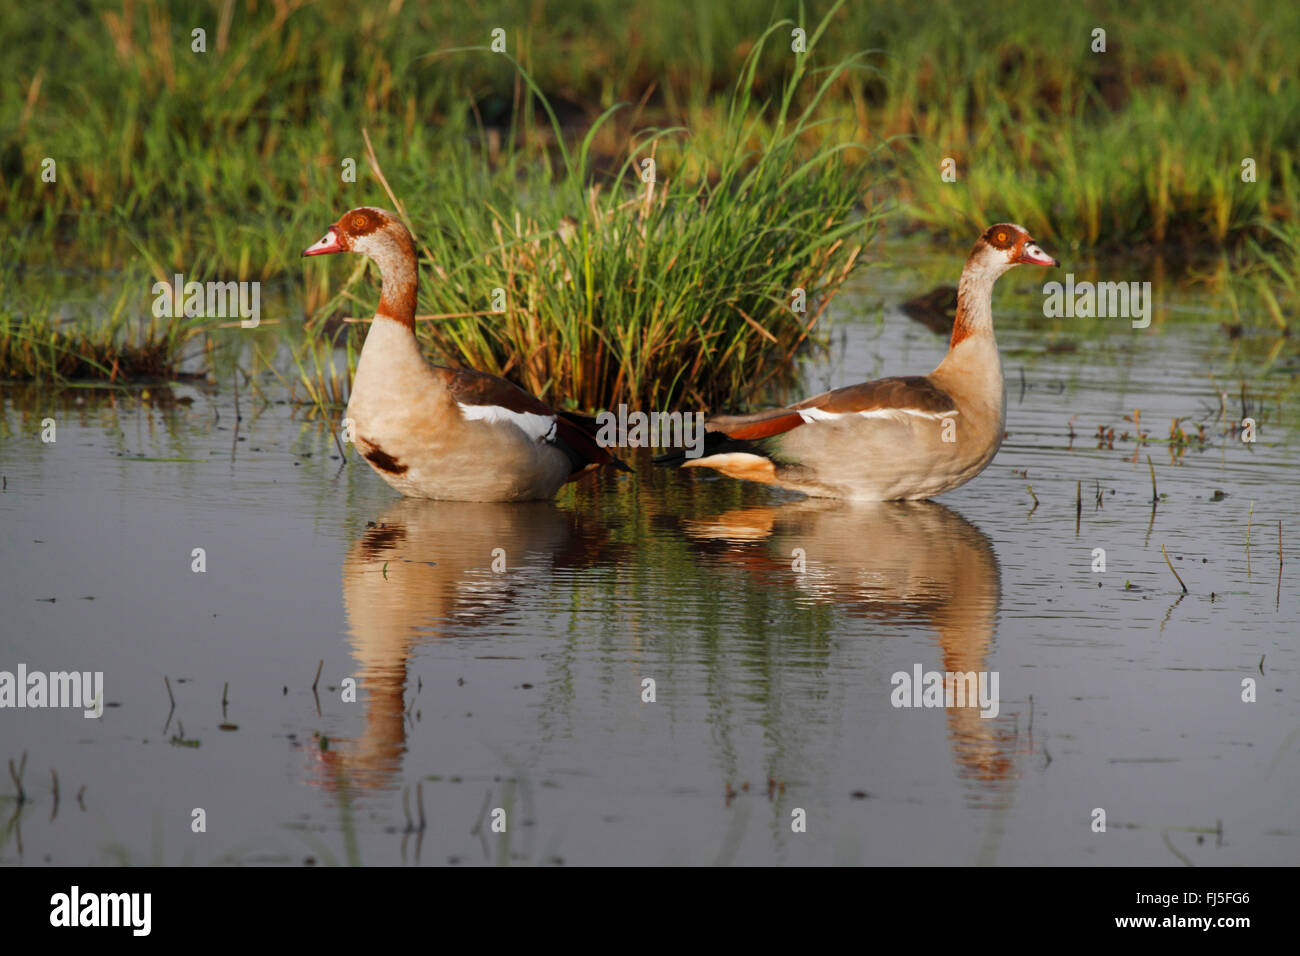 Egyptian goose (Alopochen aegyptiacus), two Egyptian geese stand in shallow water, Kenya, Masai Mara National Park - Stock Image